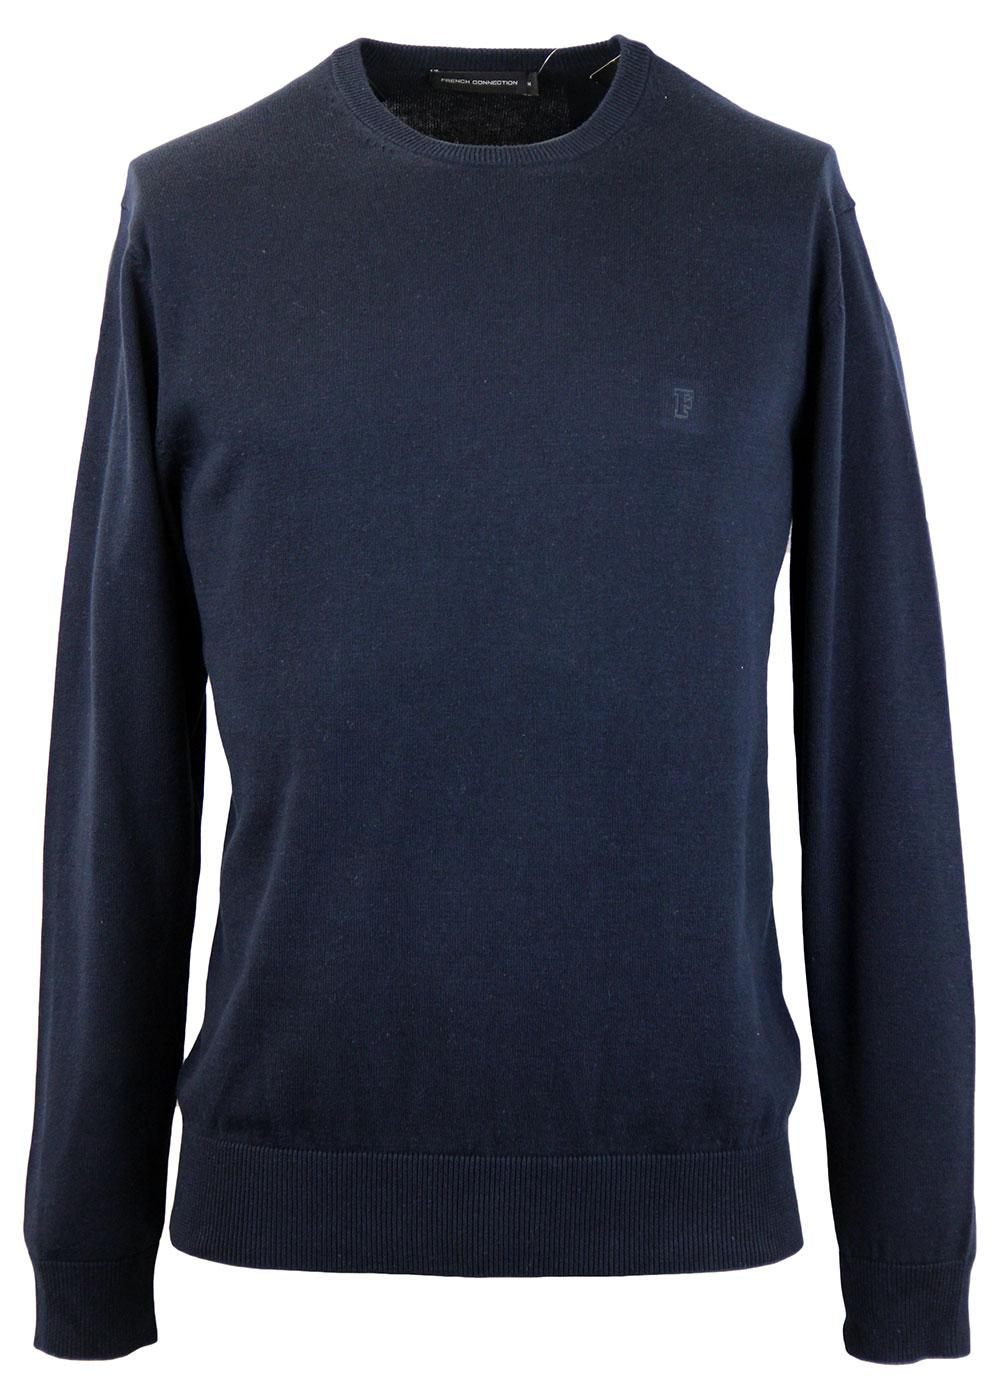 FRENCH CONNECTION Auderly Retro Crew Neck Jumper